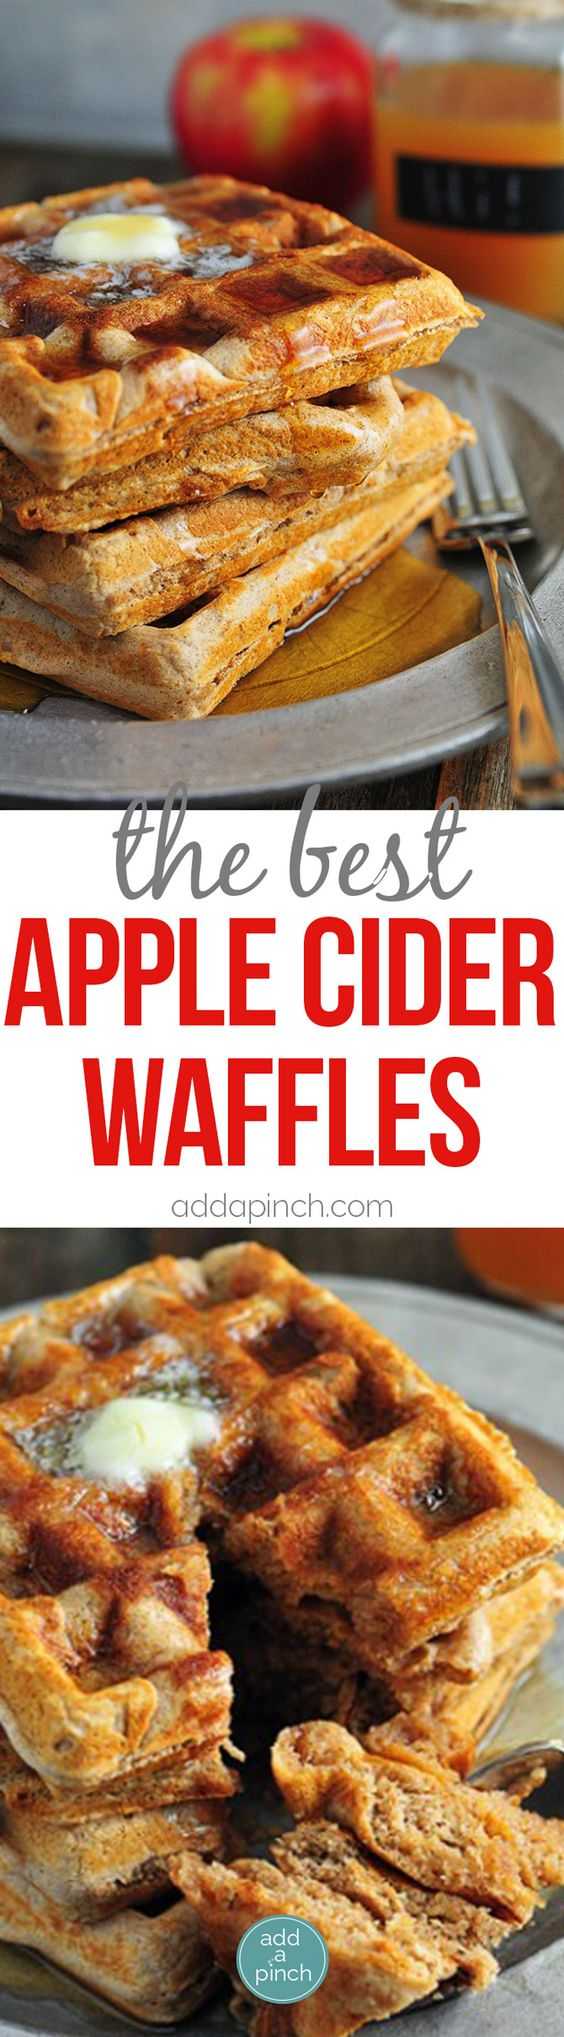 apple cider waffles the o jays for the maple syrup breakfast apples ...